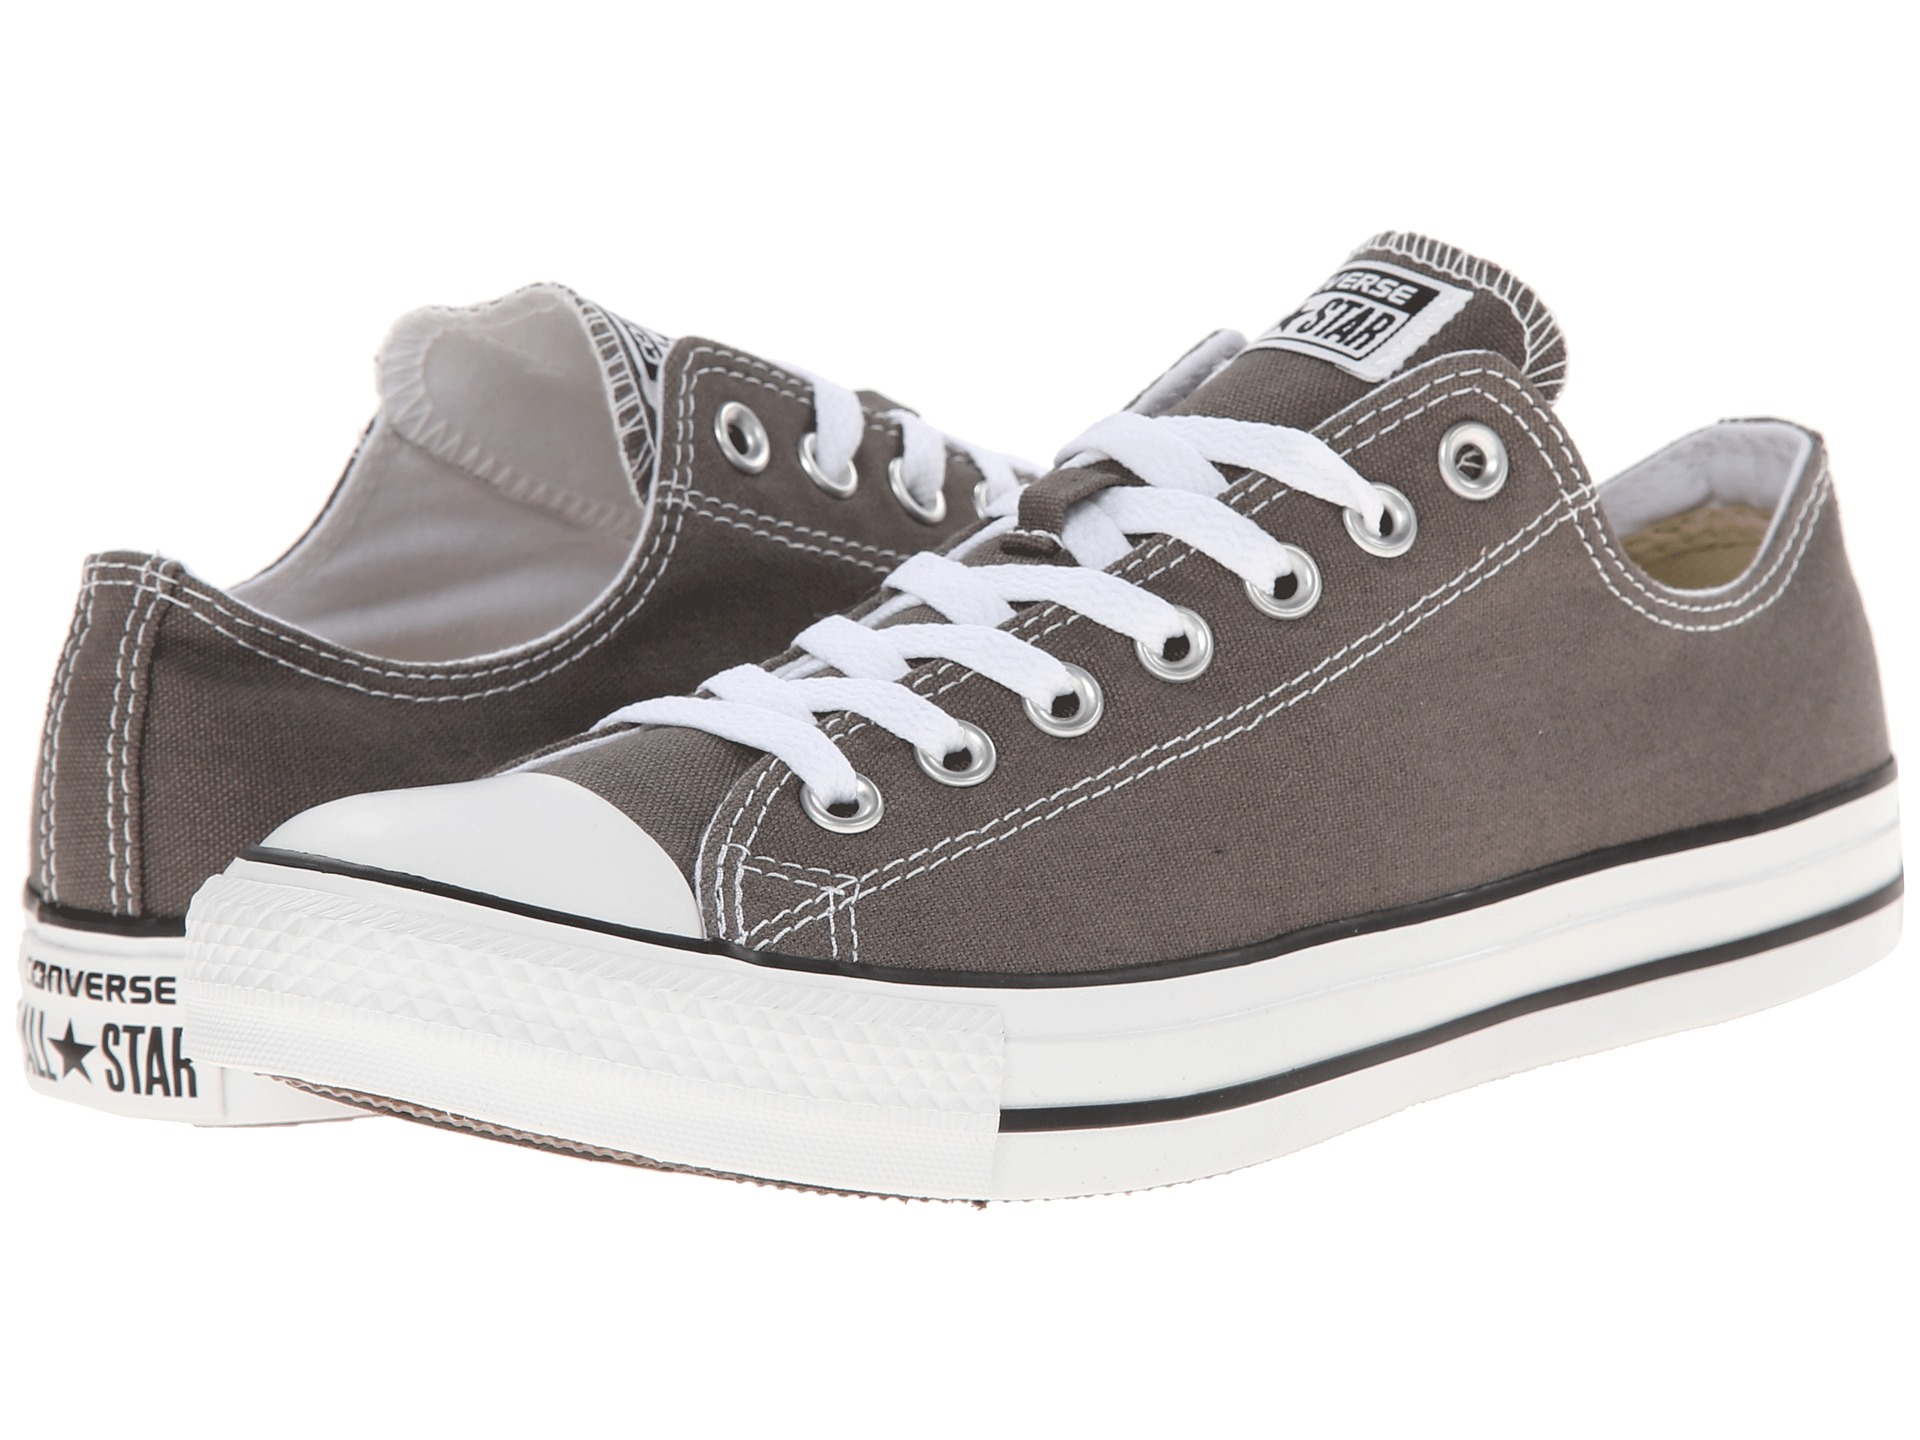 Converse All Star Shoe Size Chart